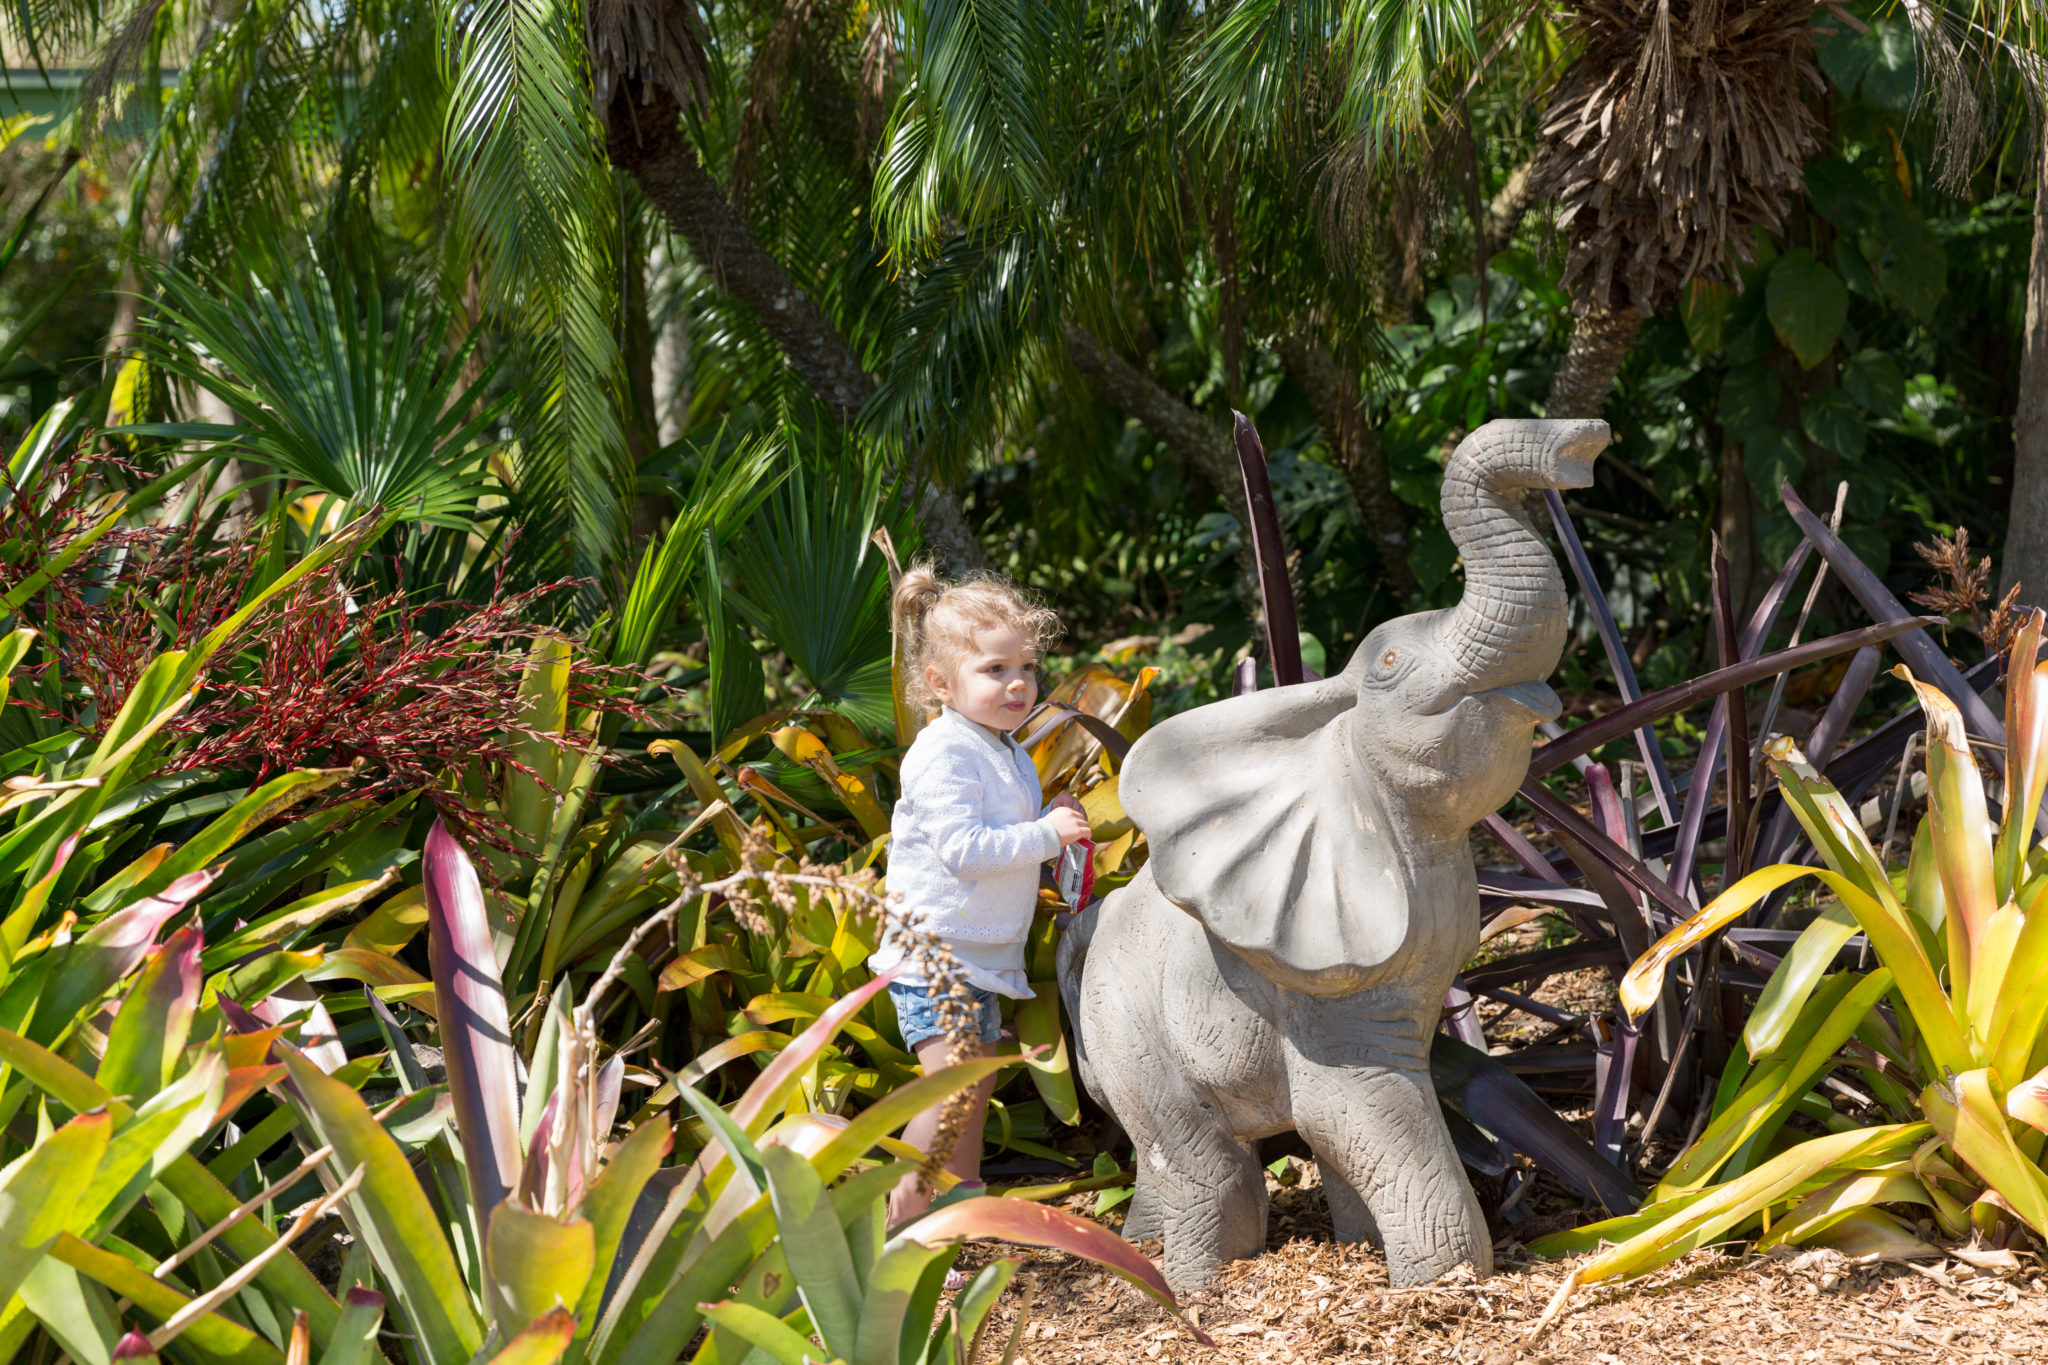 what to do and where to stay in delray beach florida | summer toddler style | summer style | beach style | west palm beach flordia | seagate hotel delray beach florida | family vacation with a toddler | visiting the miami zoo on allweareblog.com